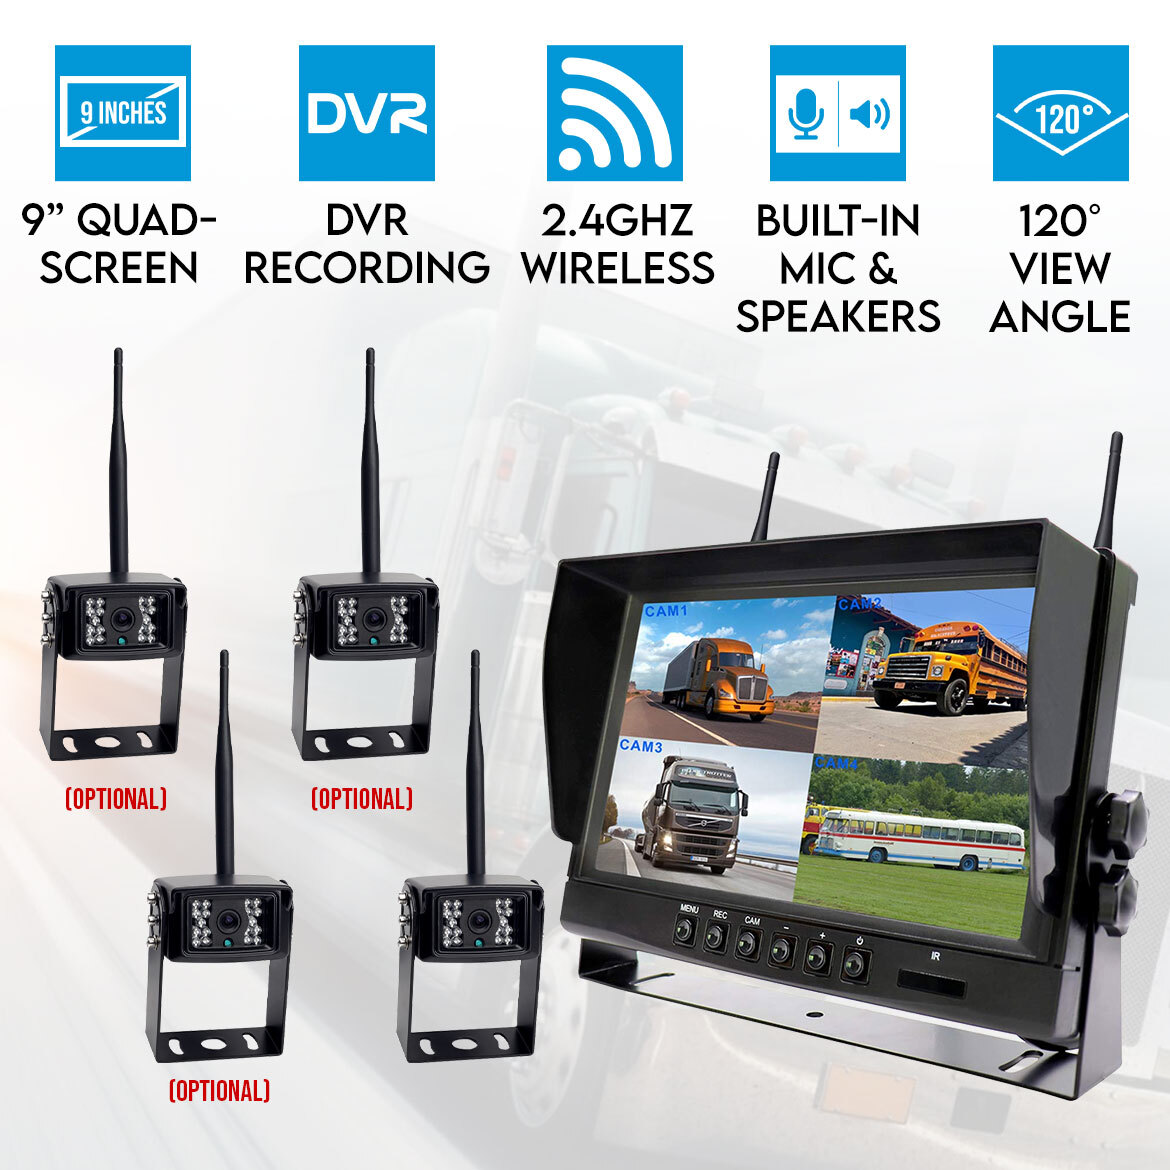 12v Led Quad Digital Wireless 9inch Quad Splitscreen Monitor Dvr Reversing